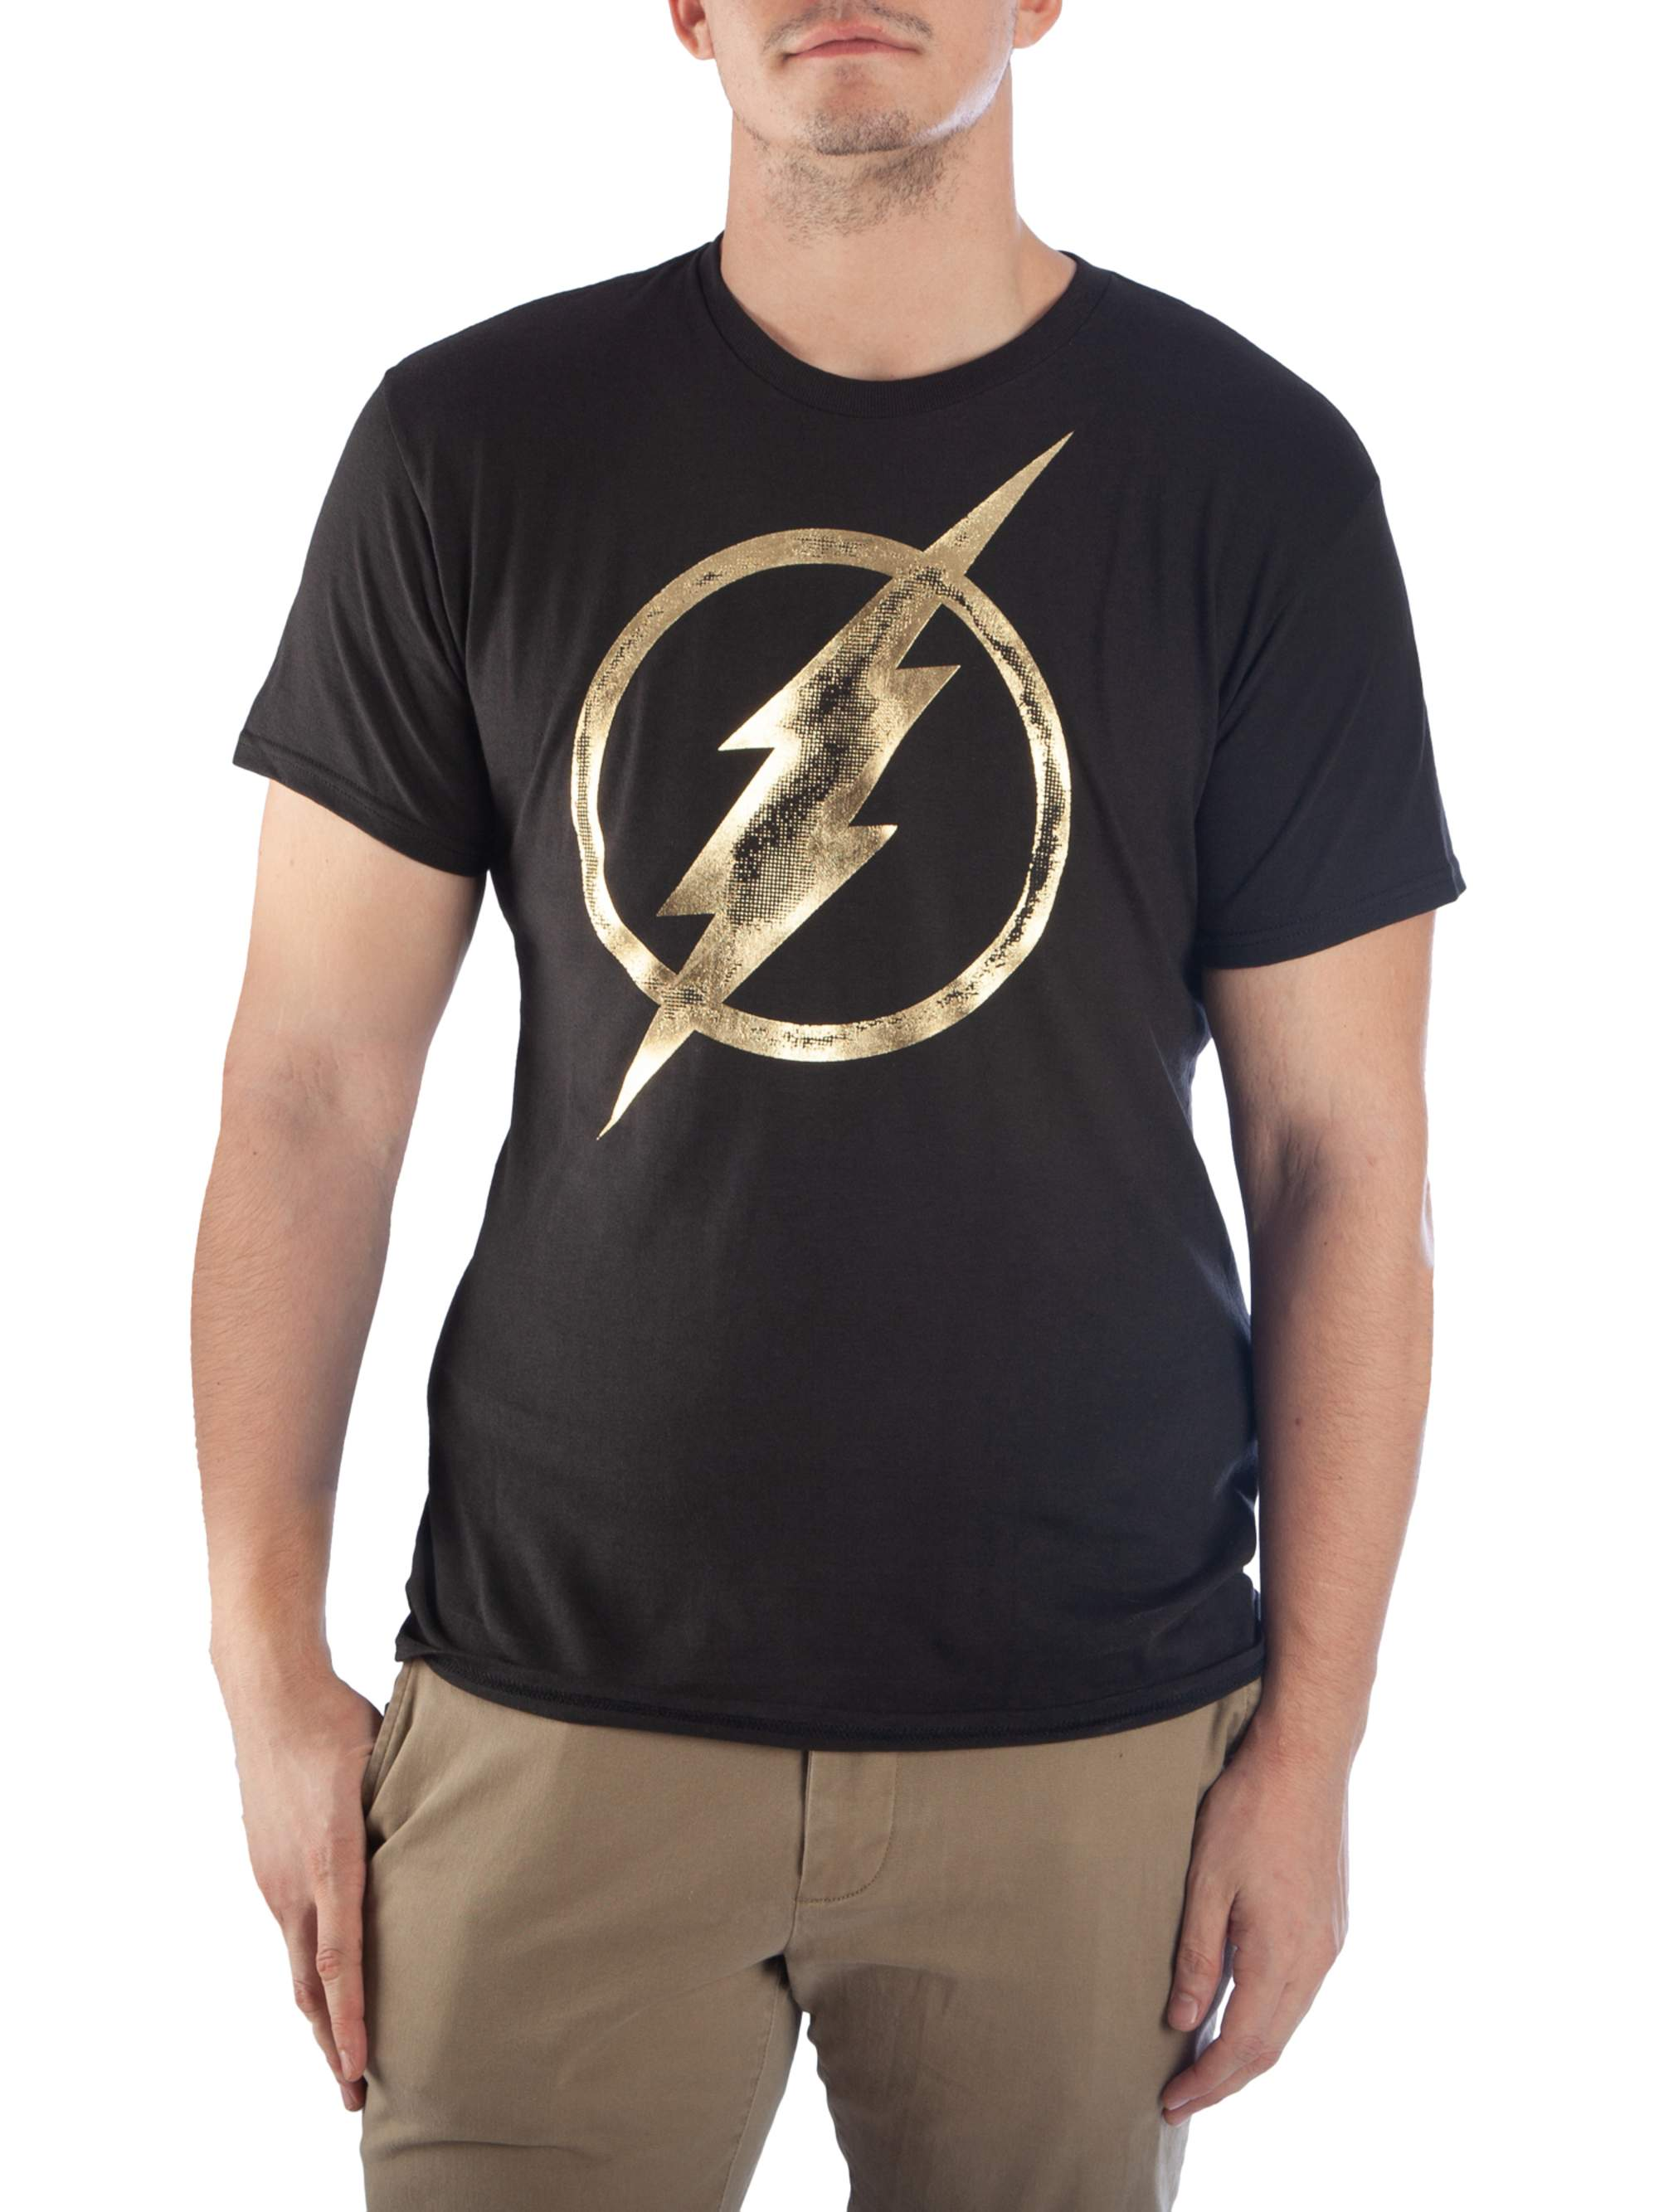 Flash Men's Gold Foil Short Sleeve Graphic T-Shirt, up to Size 2XL